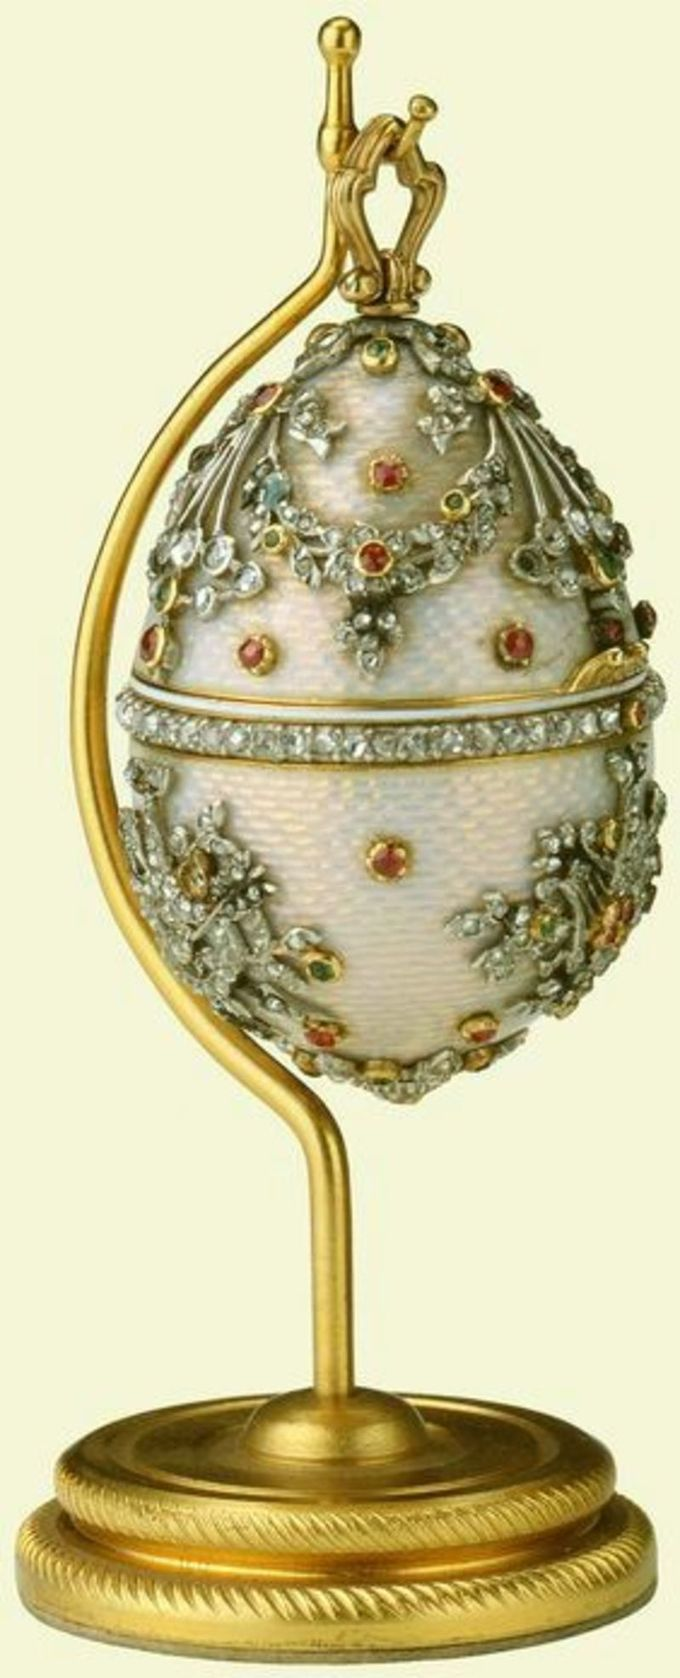 Egg, cream guilloché enamel set with diamond band around centre, upper section with ribbon swags, lower section with heart trophies, all set with rubies and emeralds, gold ring, hanging from plain gold stand, circular base with spiral pattern. Given to Qu